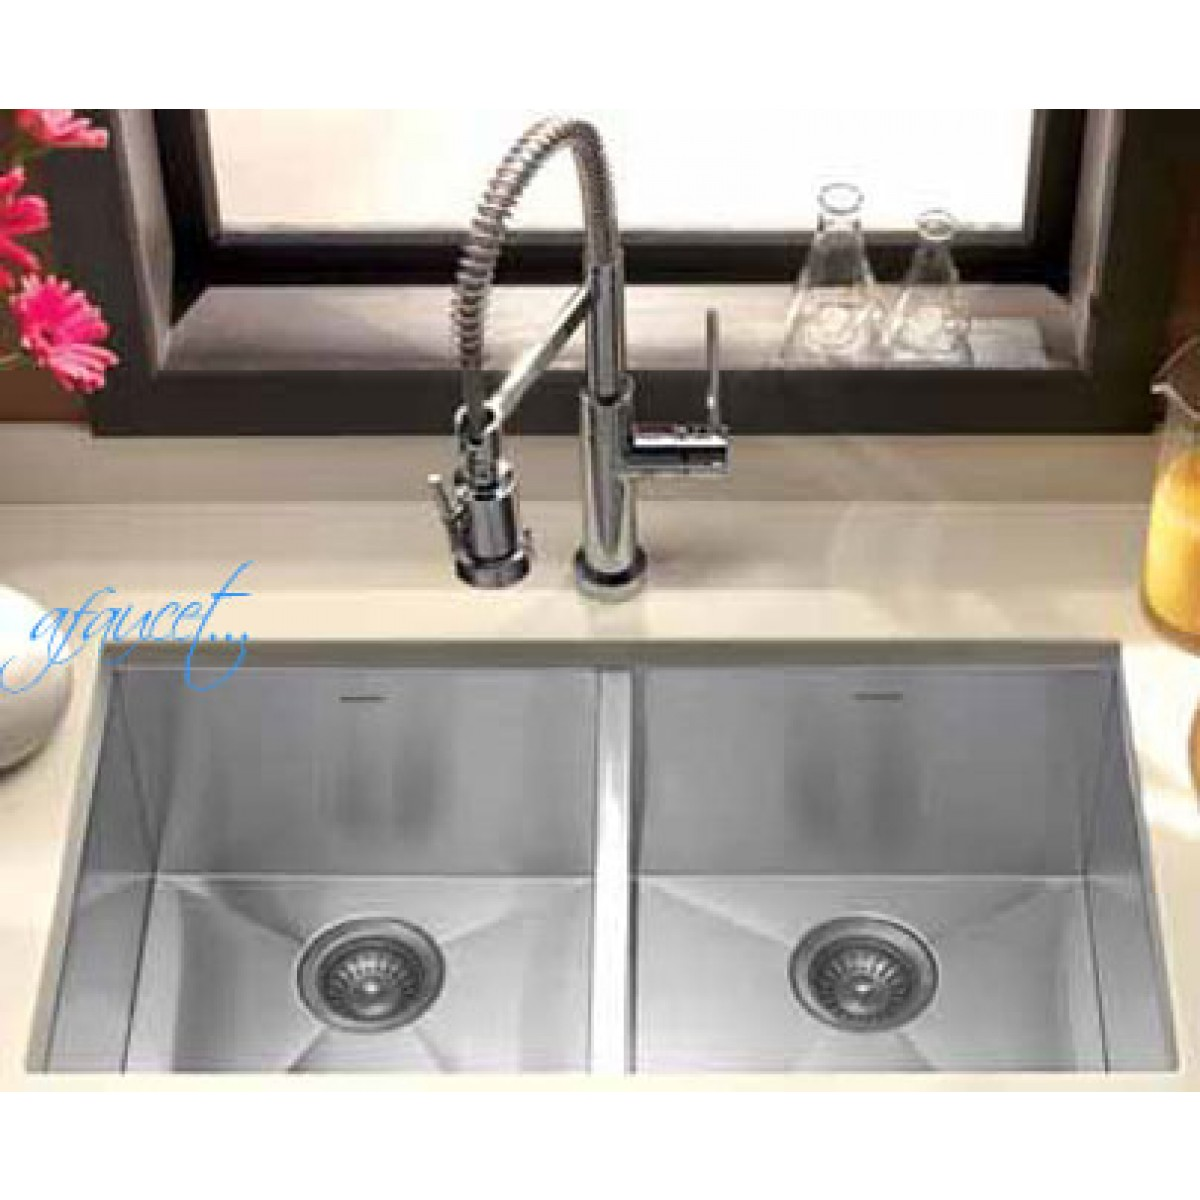 37 Inch Stainless Steel Undermount 50/50 Double Bowl Kitchen Sink ...